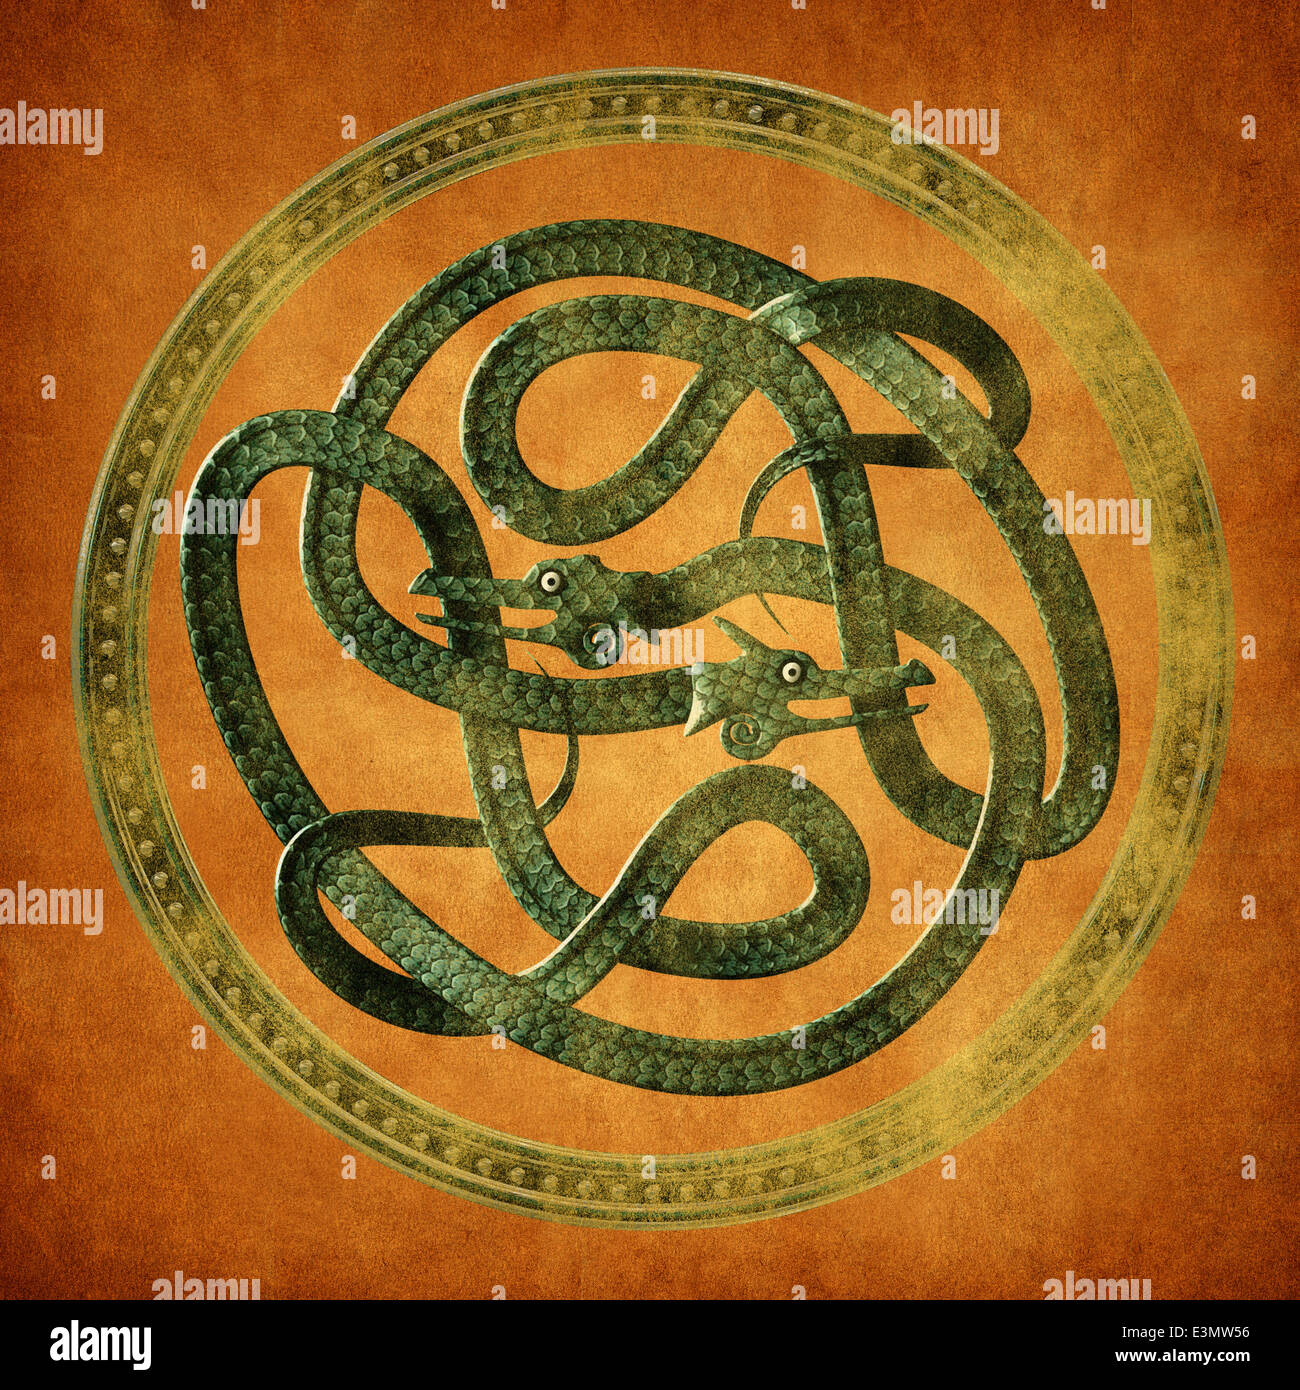 Green Serpent Celtic Knot on an old parchment document - Stock Image